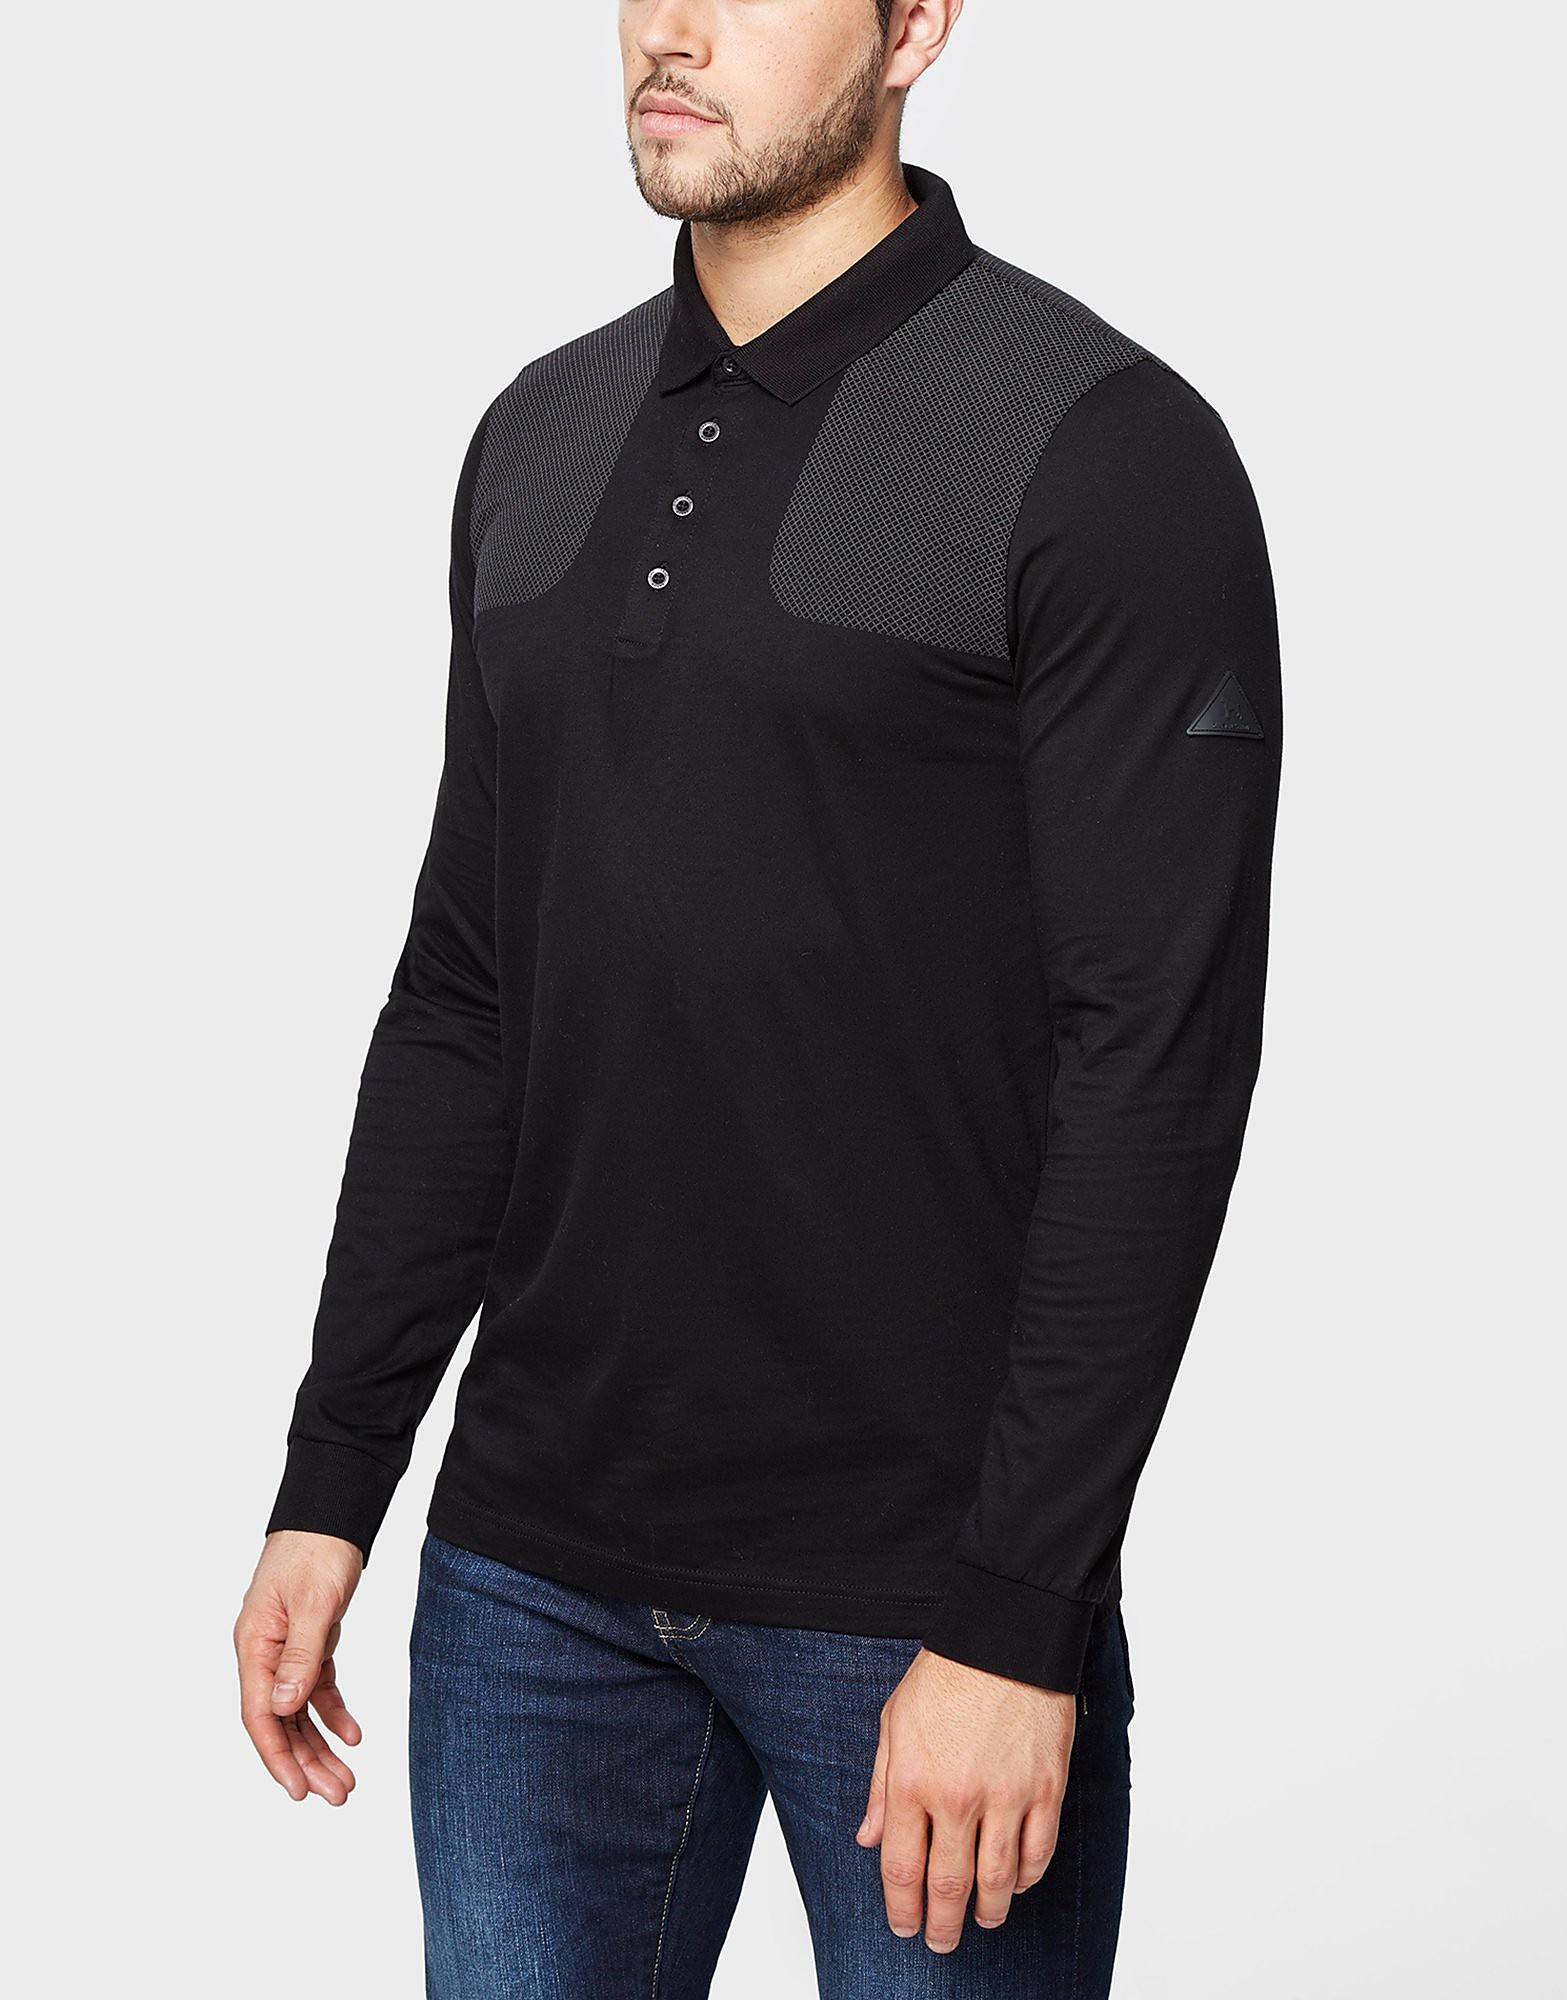 One True Saxon Frost Long-Sleeve Polo Shirt - Exclusive